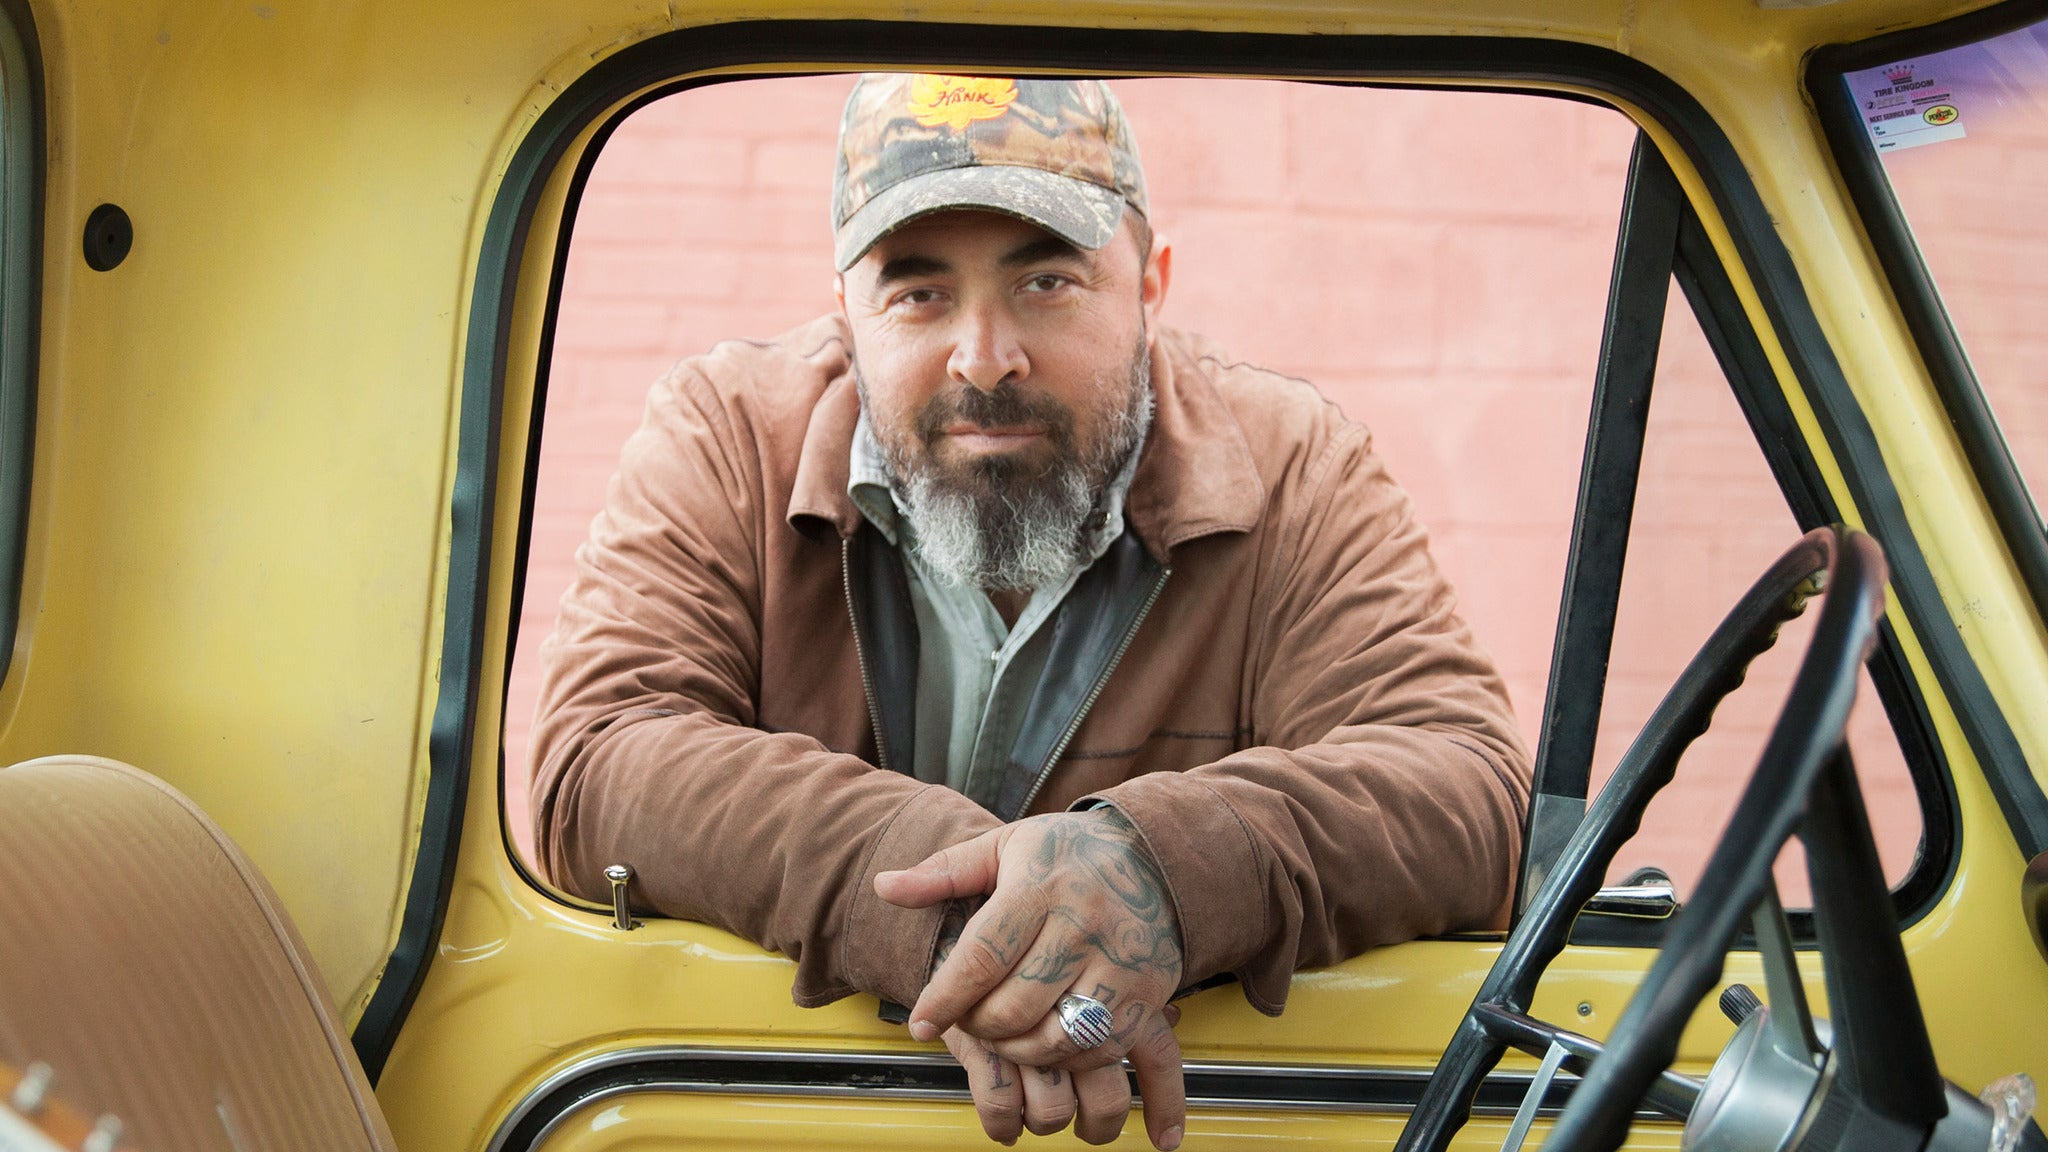 Aaron Lewis, The Sinner Tour at Golden Nugget - Lake Charles